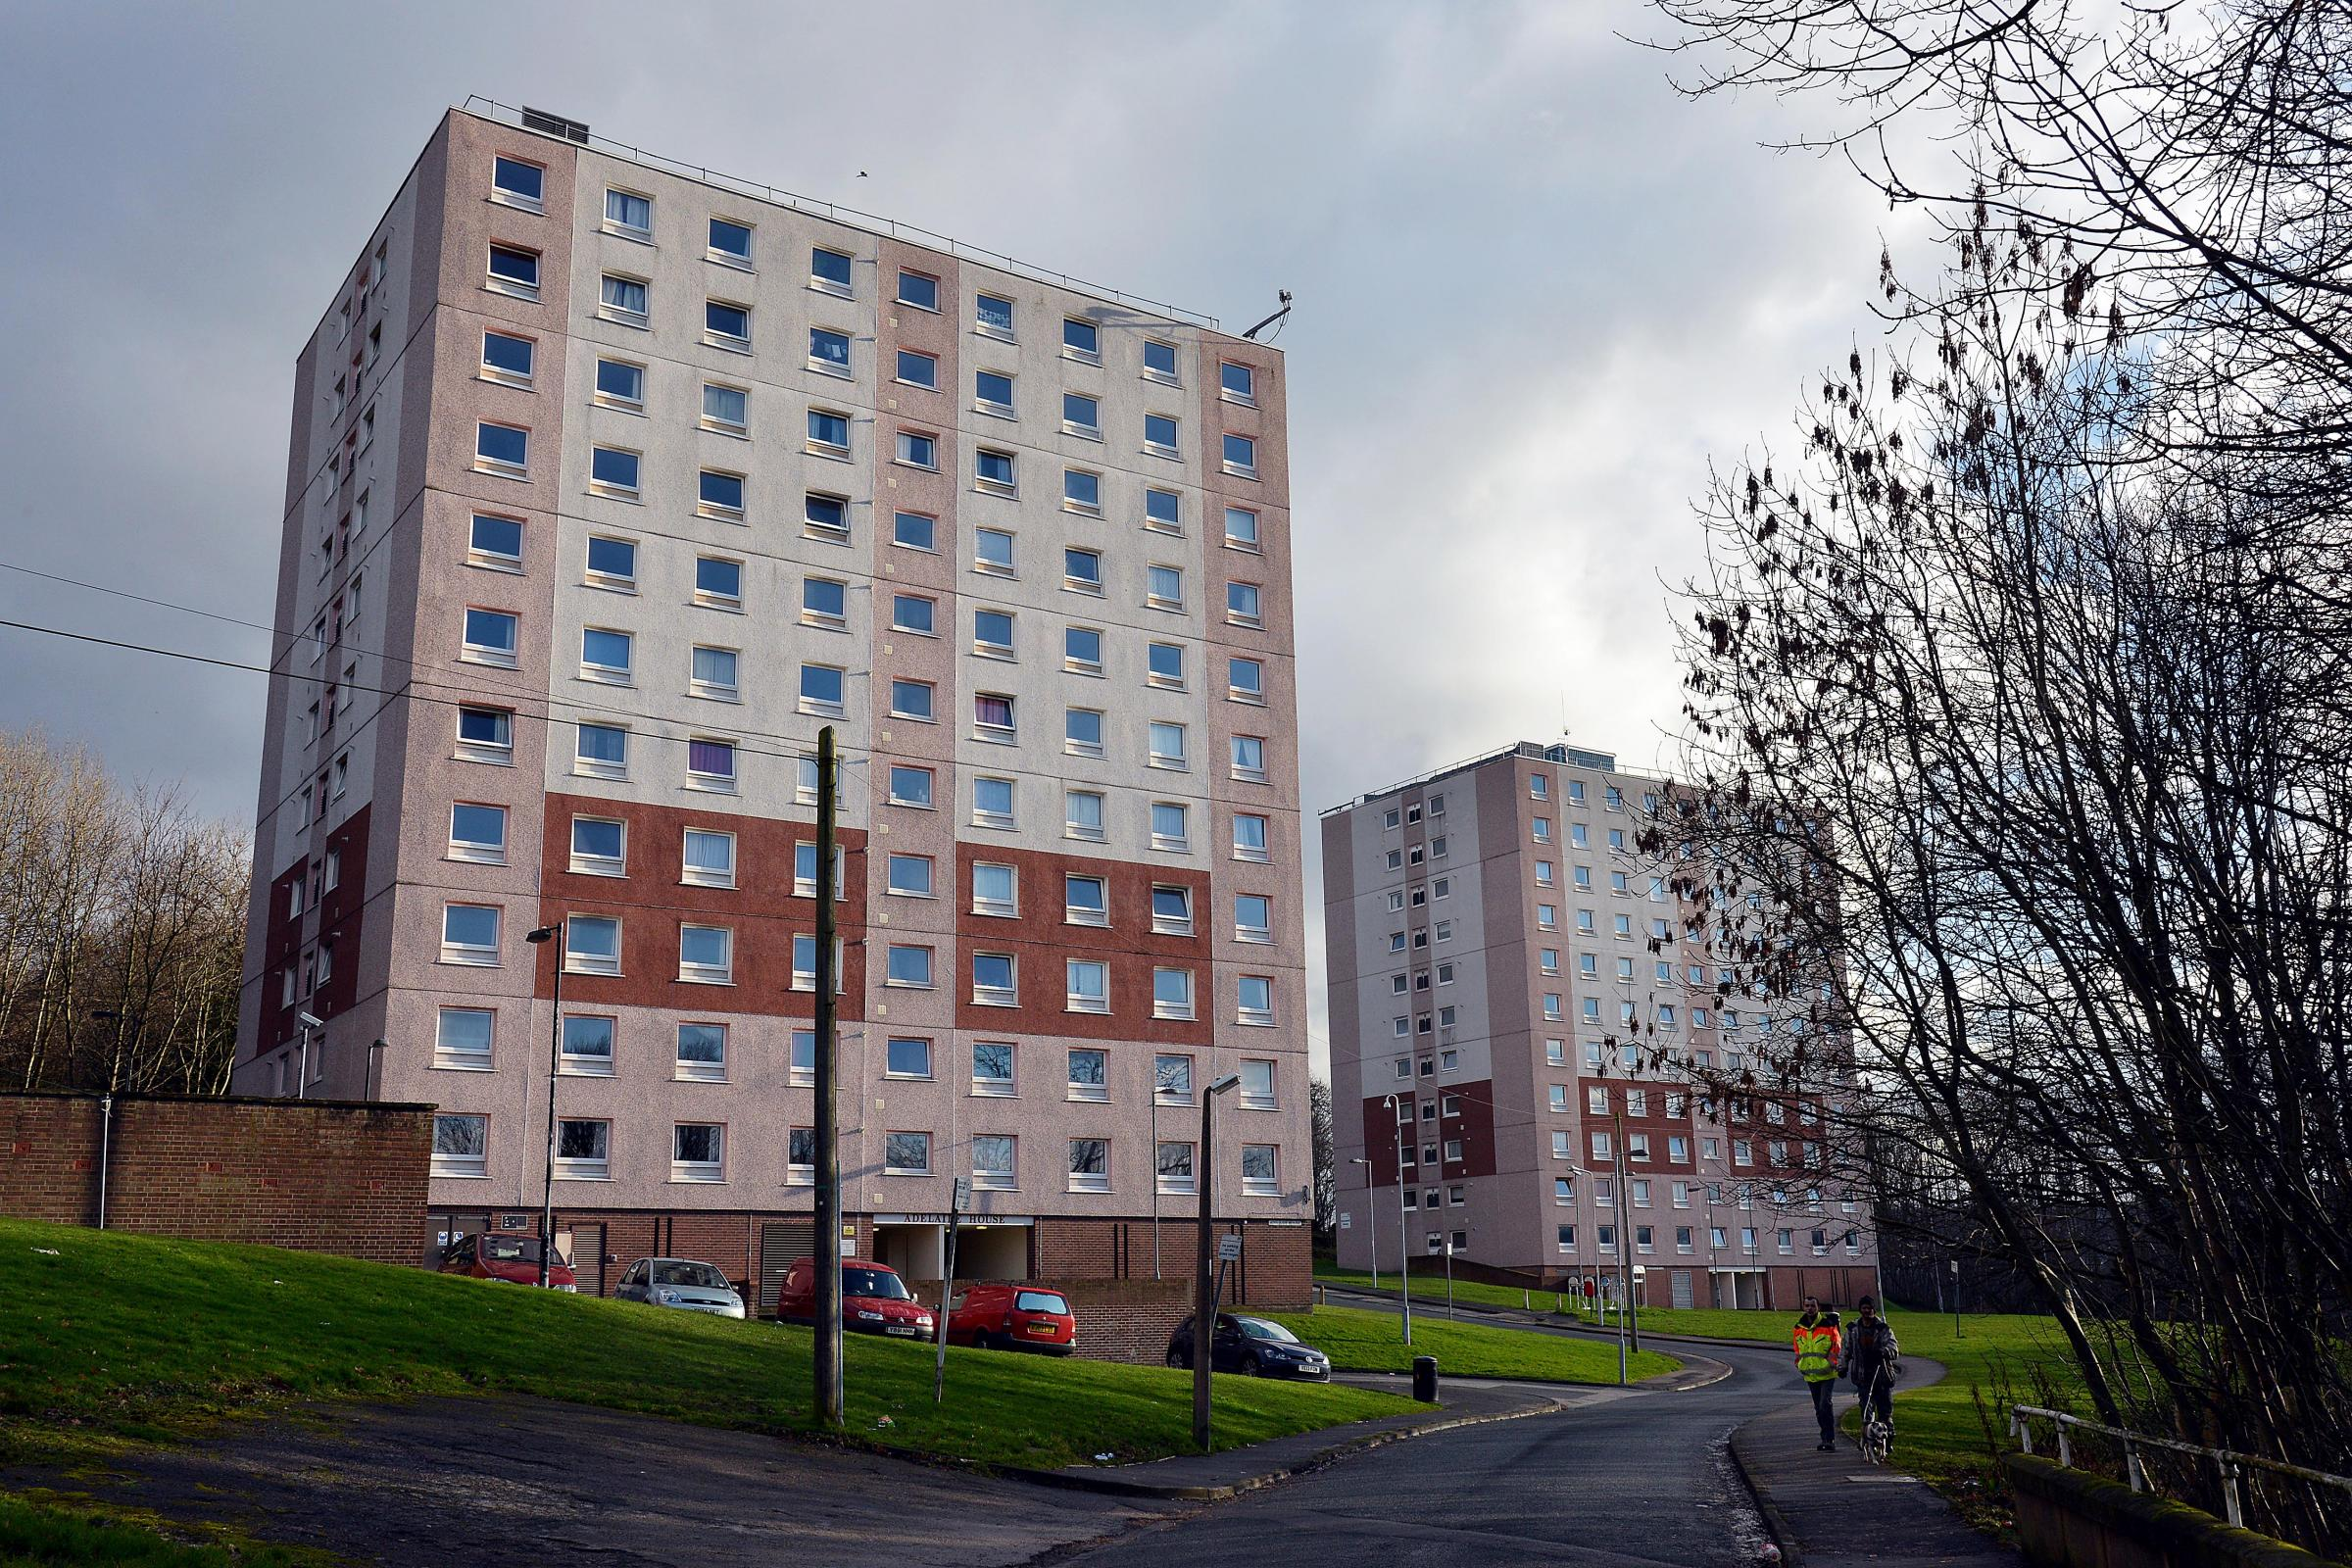 Man plunges to his death from sixth floor of Bingley flats